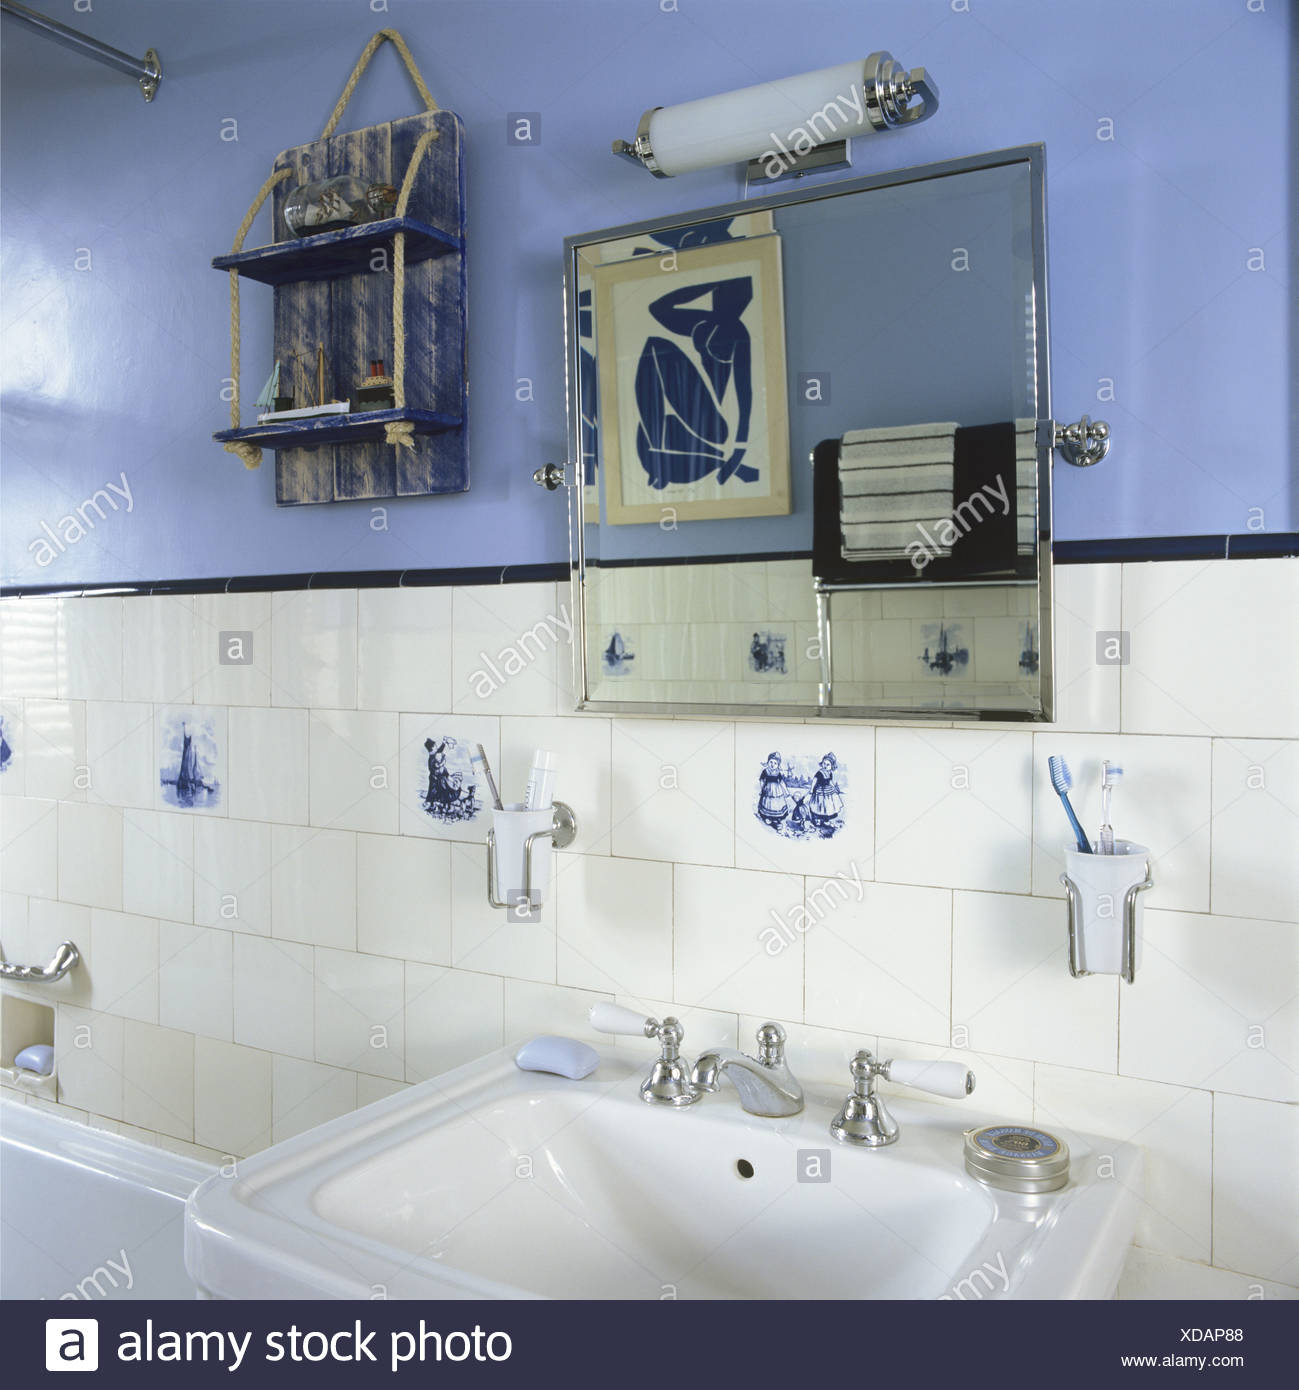 Close Up Of Light Fitting And Simple Mirror Tiled Splash Back And Basin In  Pale Blue Cottage Bathroom